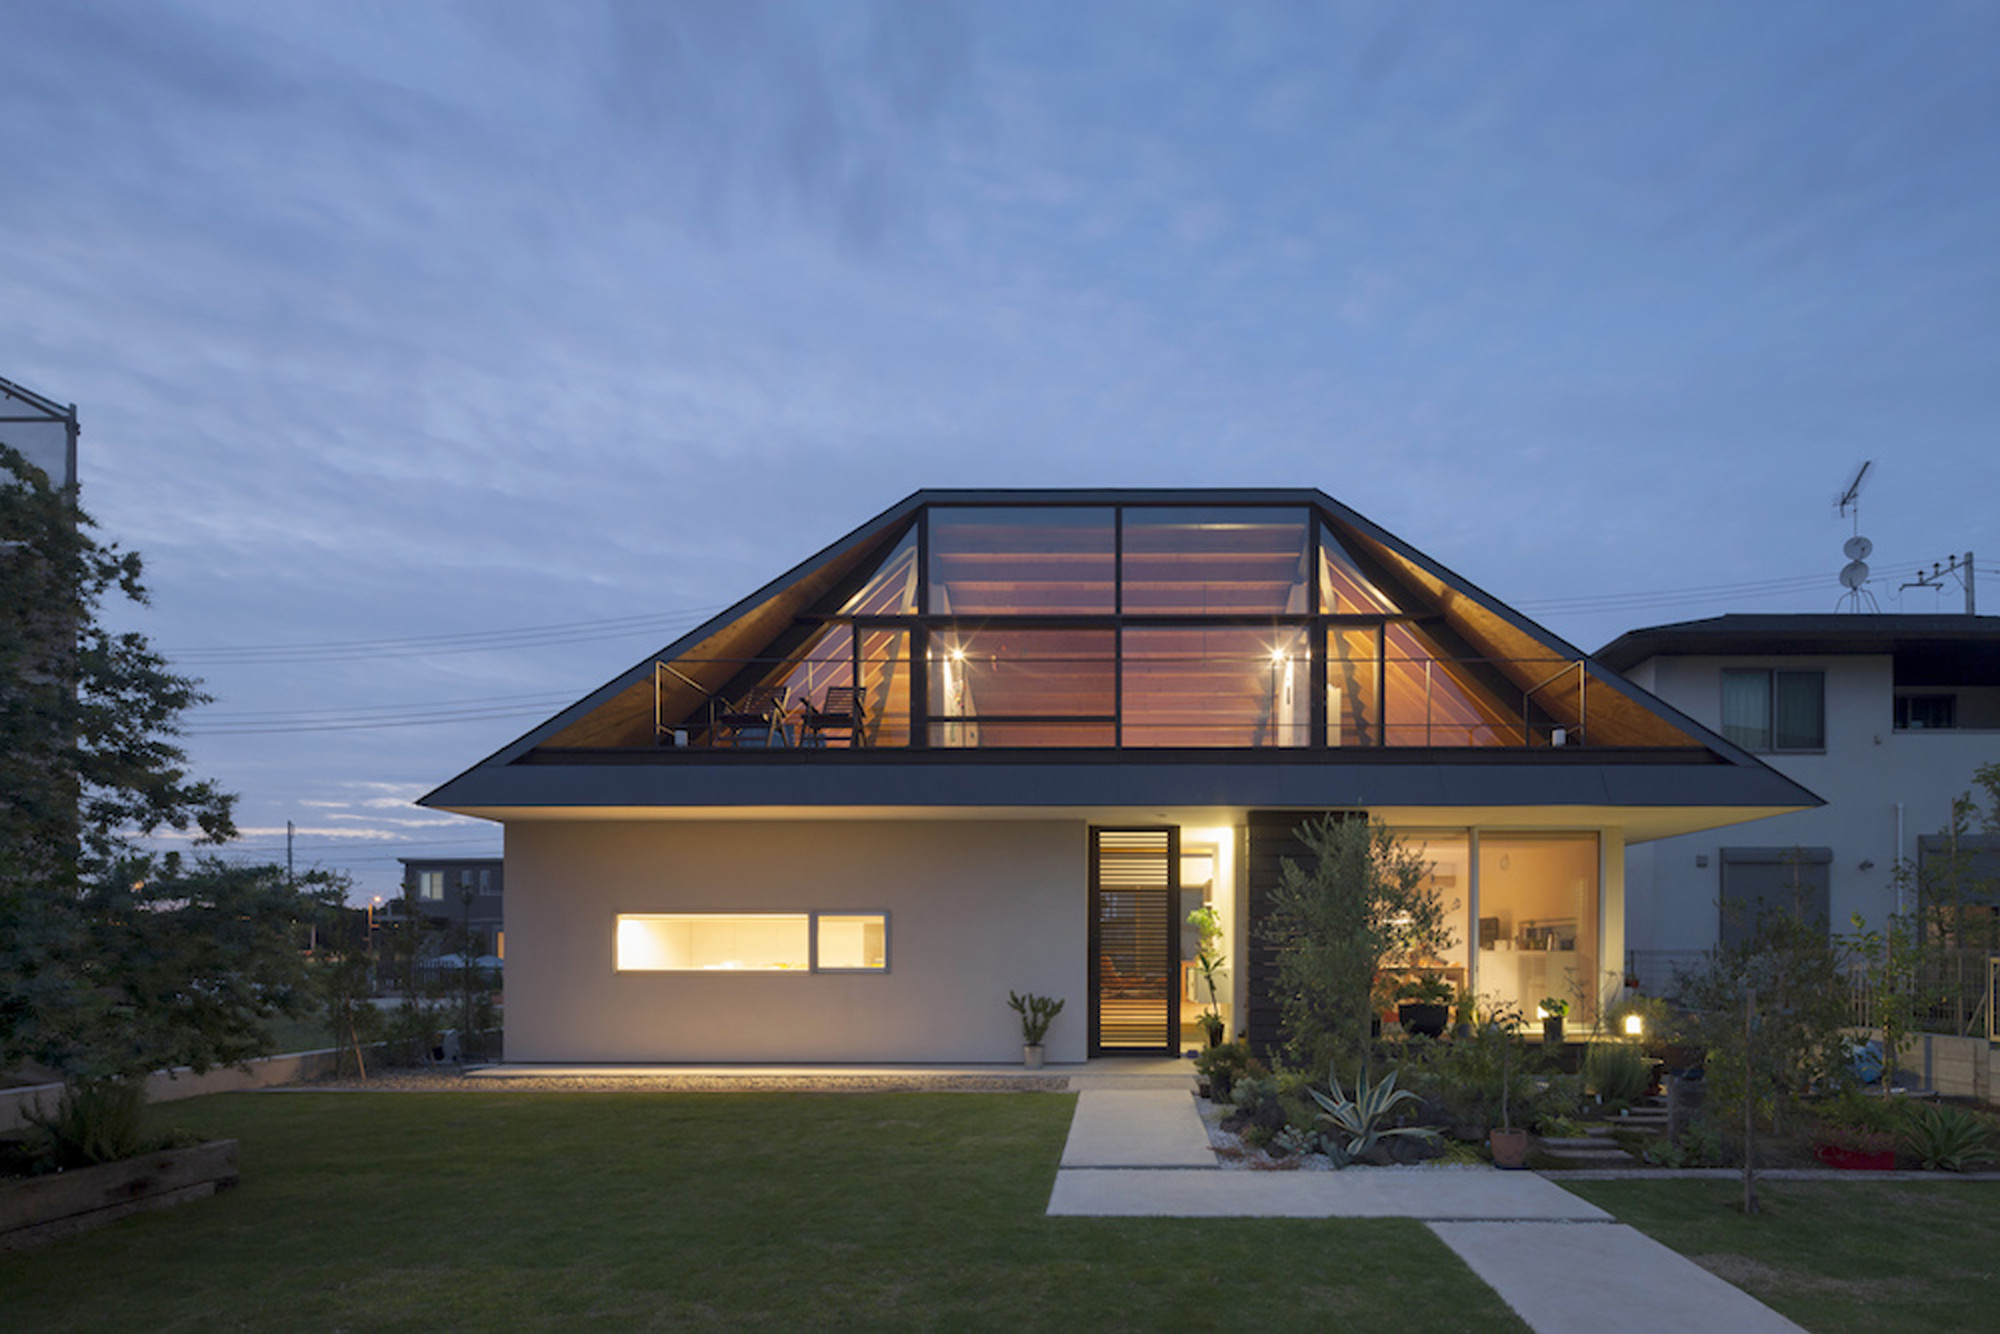 House with a Large Hipped Roof / Naoi Architecture & Design Office, © Hiroshi Ueda